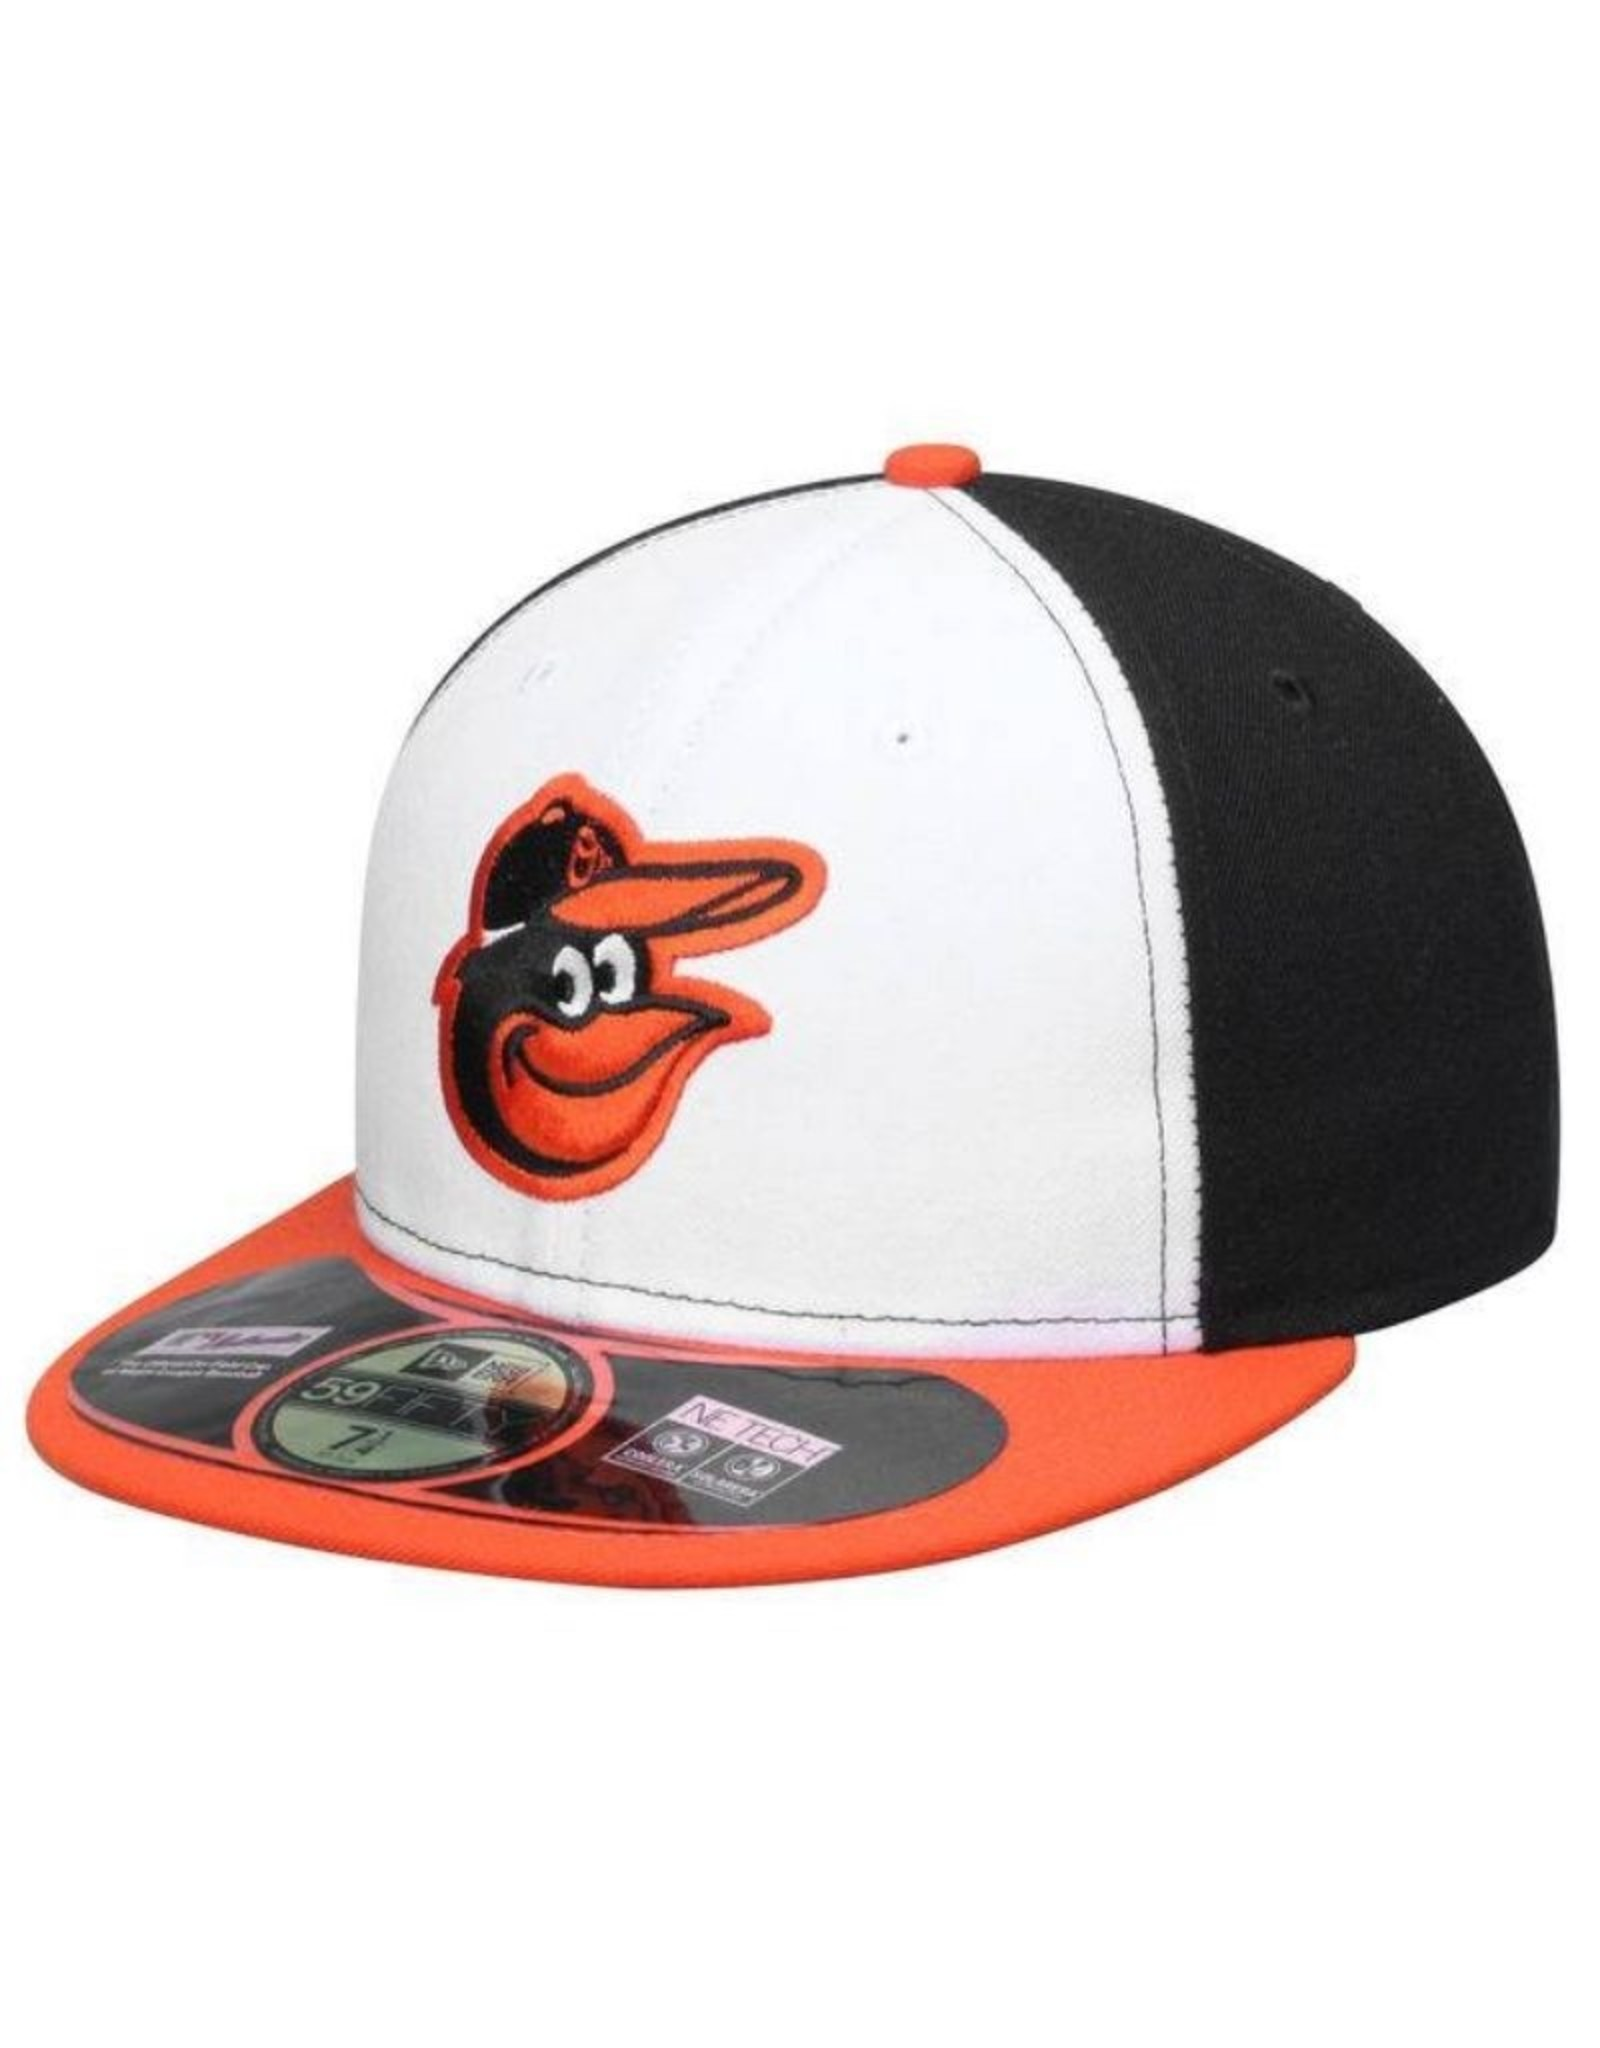 New Era On-Field Home Hat Baltimore Orioles Black